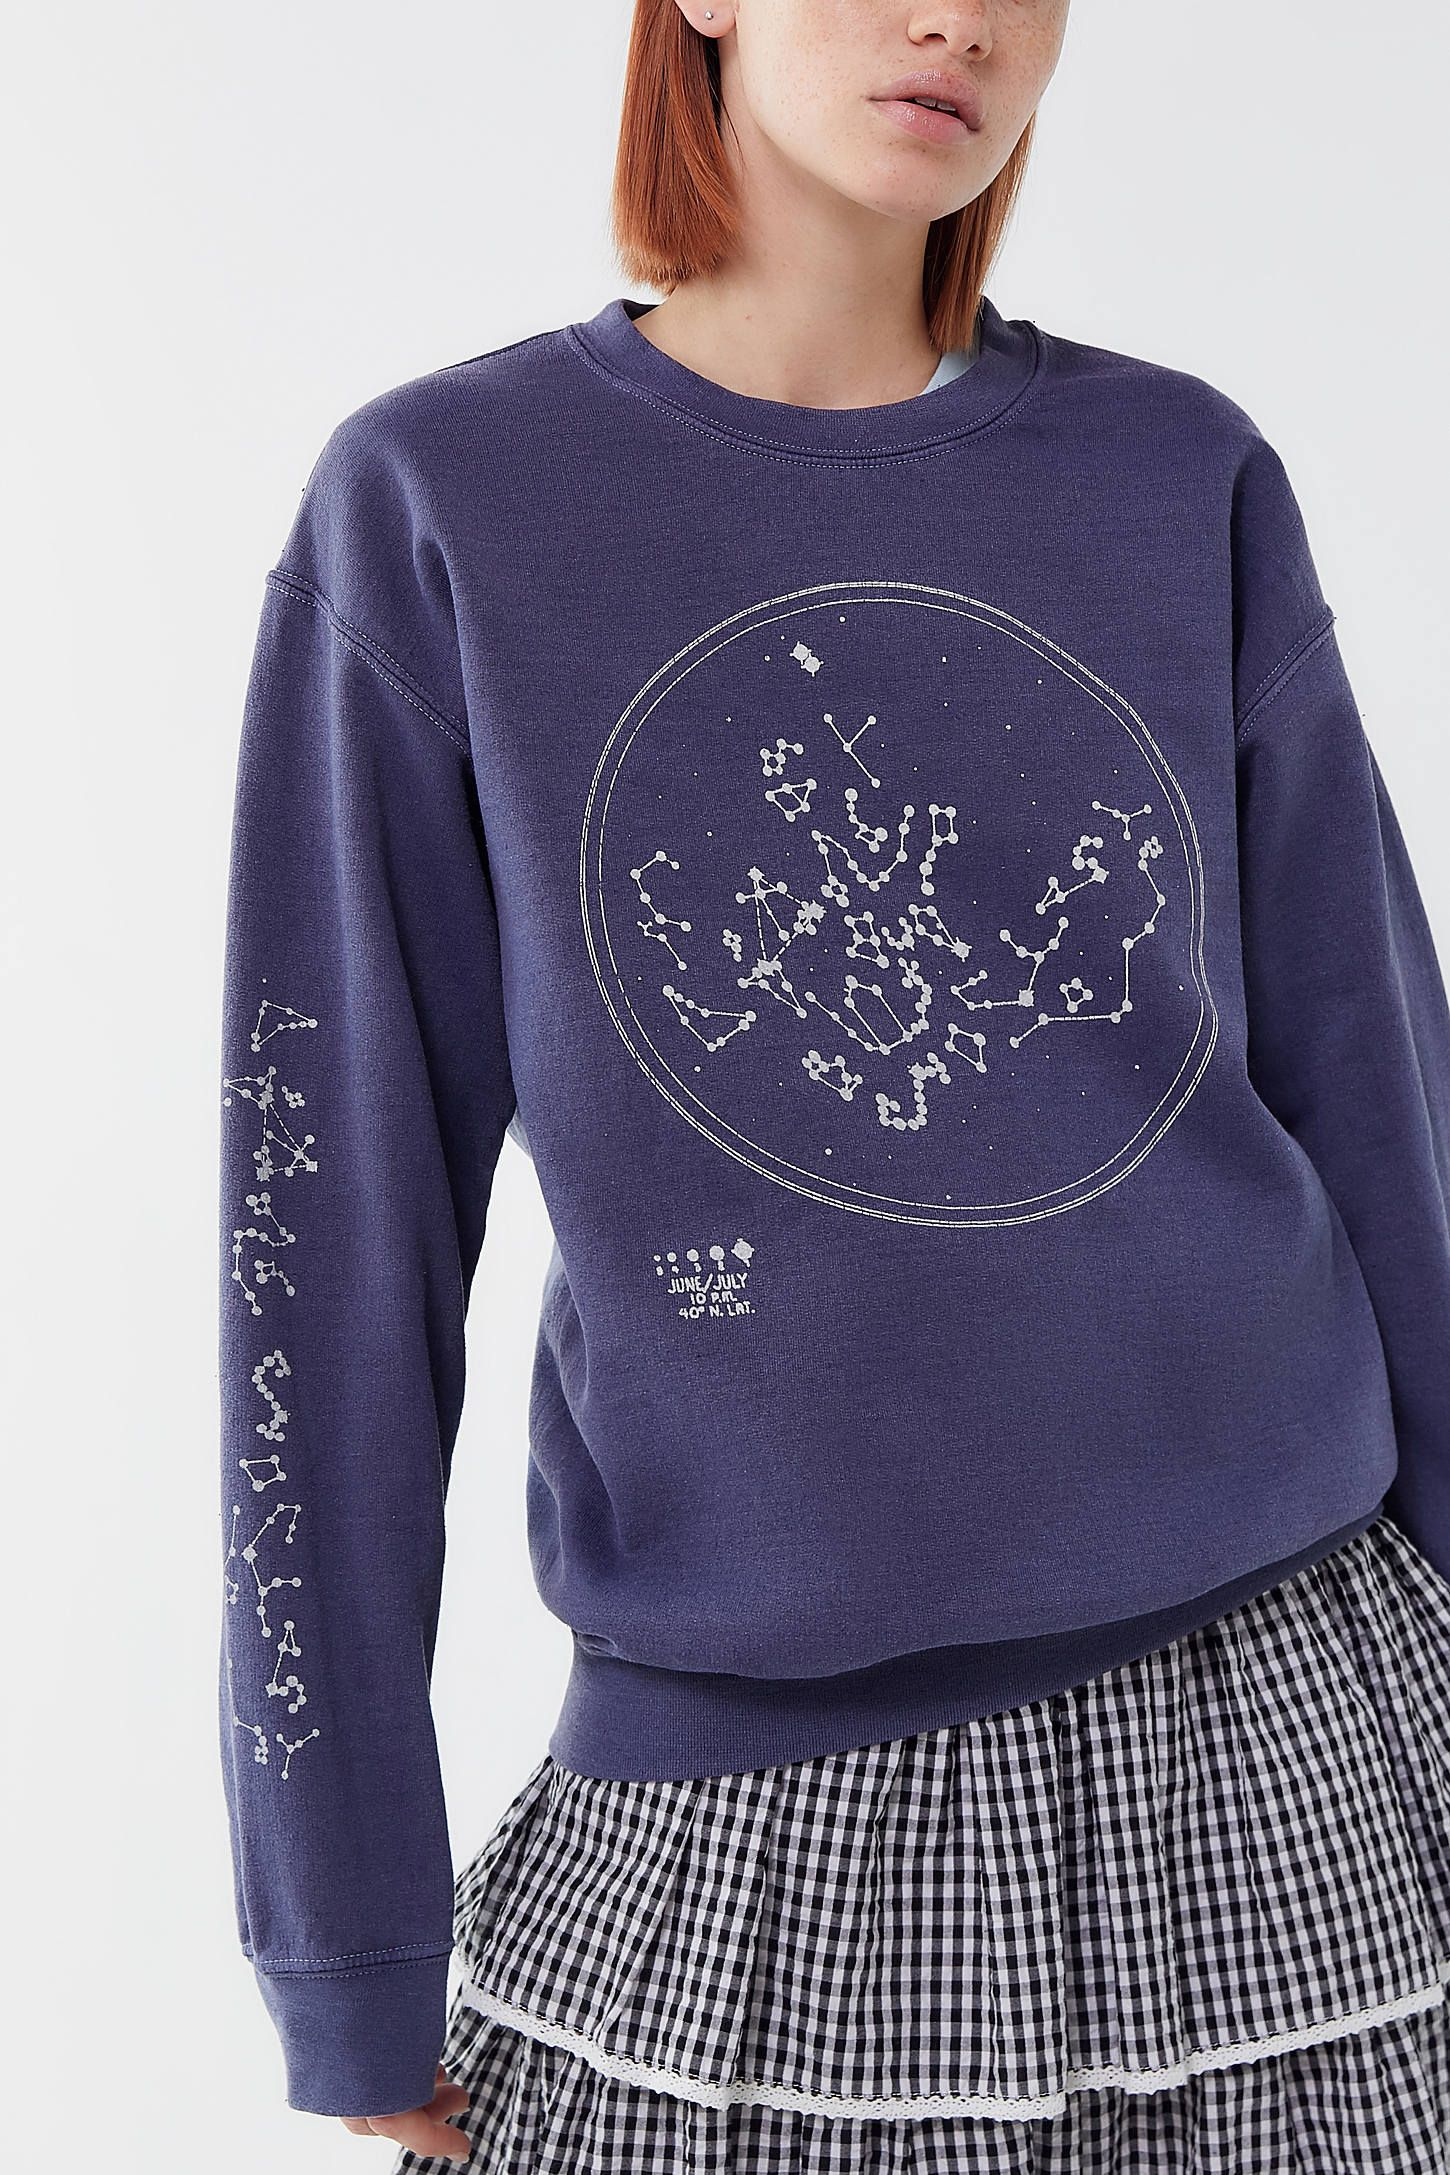 Project Social T Constellation Pullover Sweatshirt Urban Outfitters Sweatshirts Clothes Project Social T